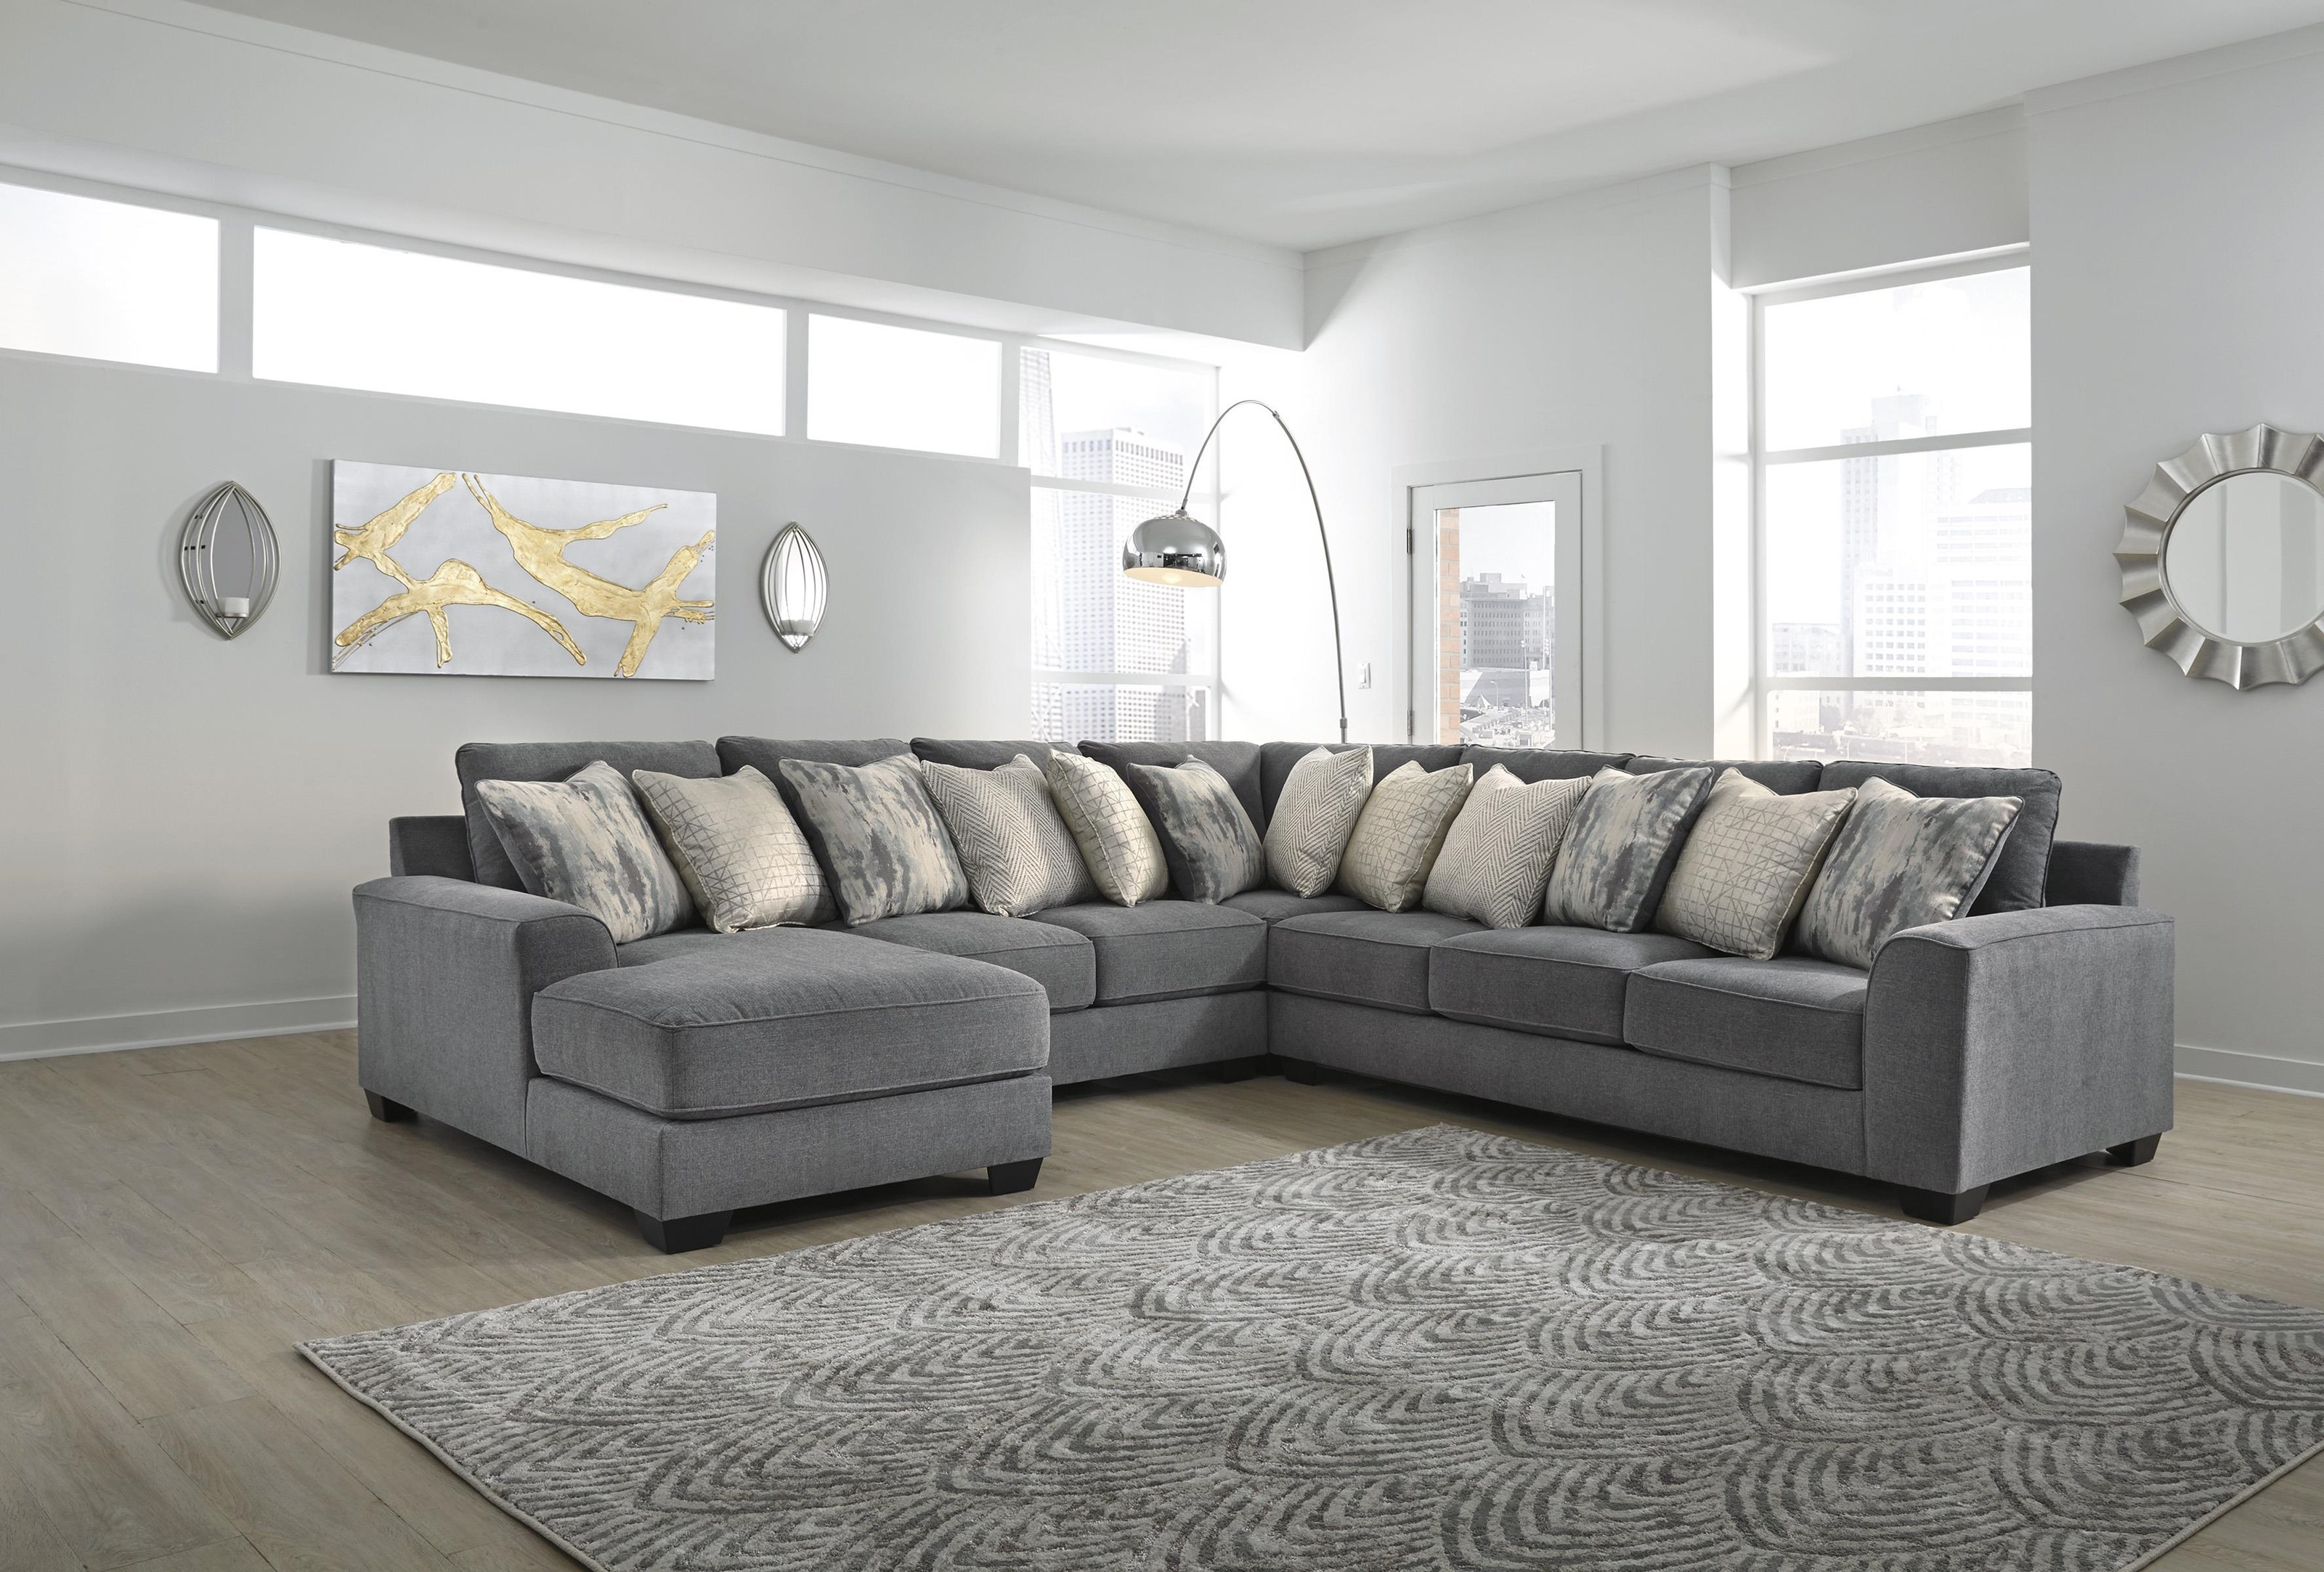 castano 4 piece sectional